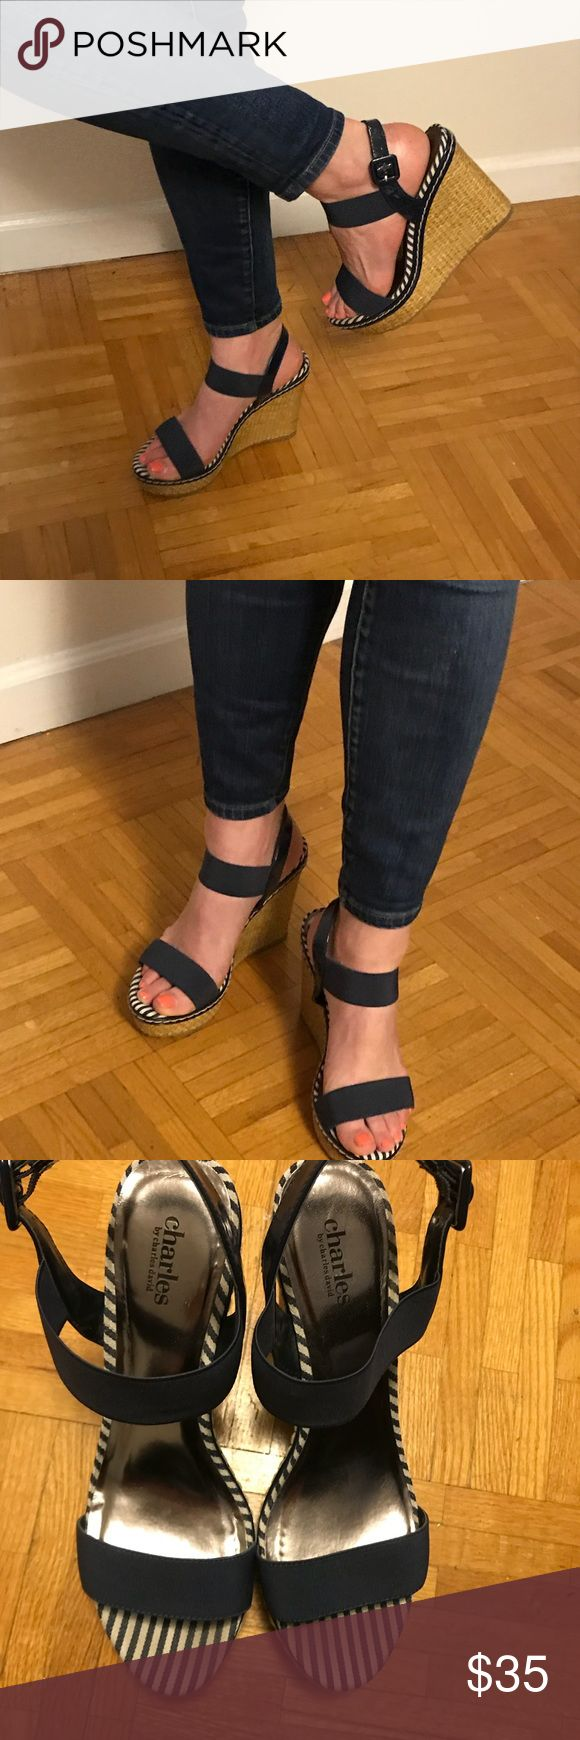 Charles David Navy wedge sandals Sz 9 Charles David wedge sandals. Navy Straps are thick elastic material. Shoes are a 9 - but I'd say better for 8.5. Worn 3 times. Charles David Shoes Sandals